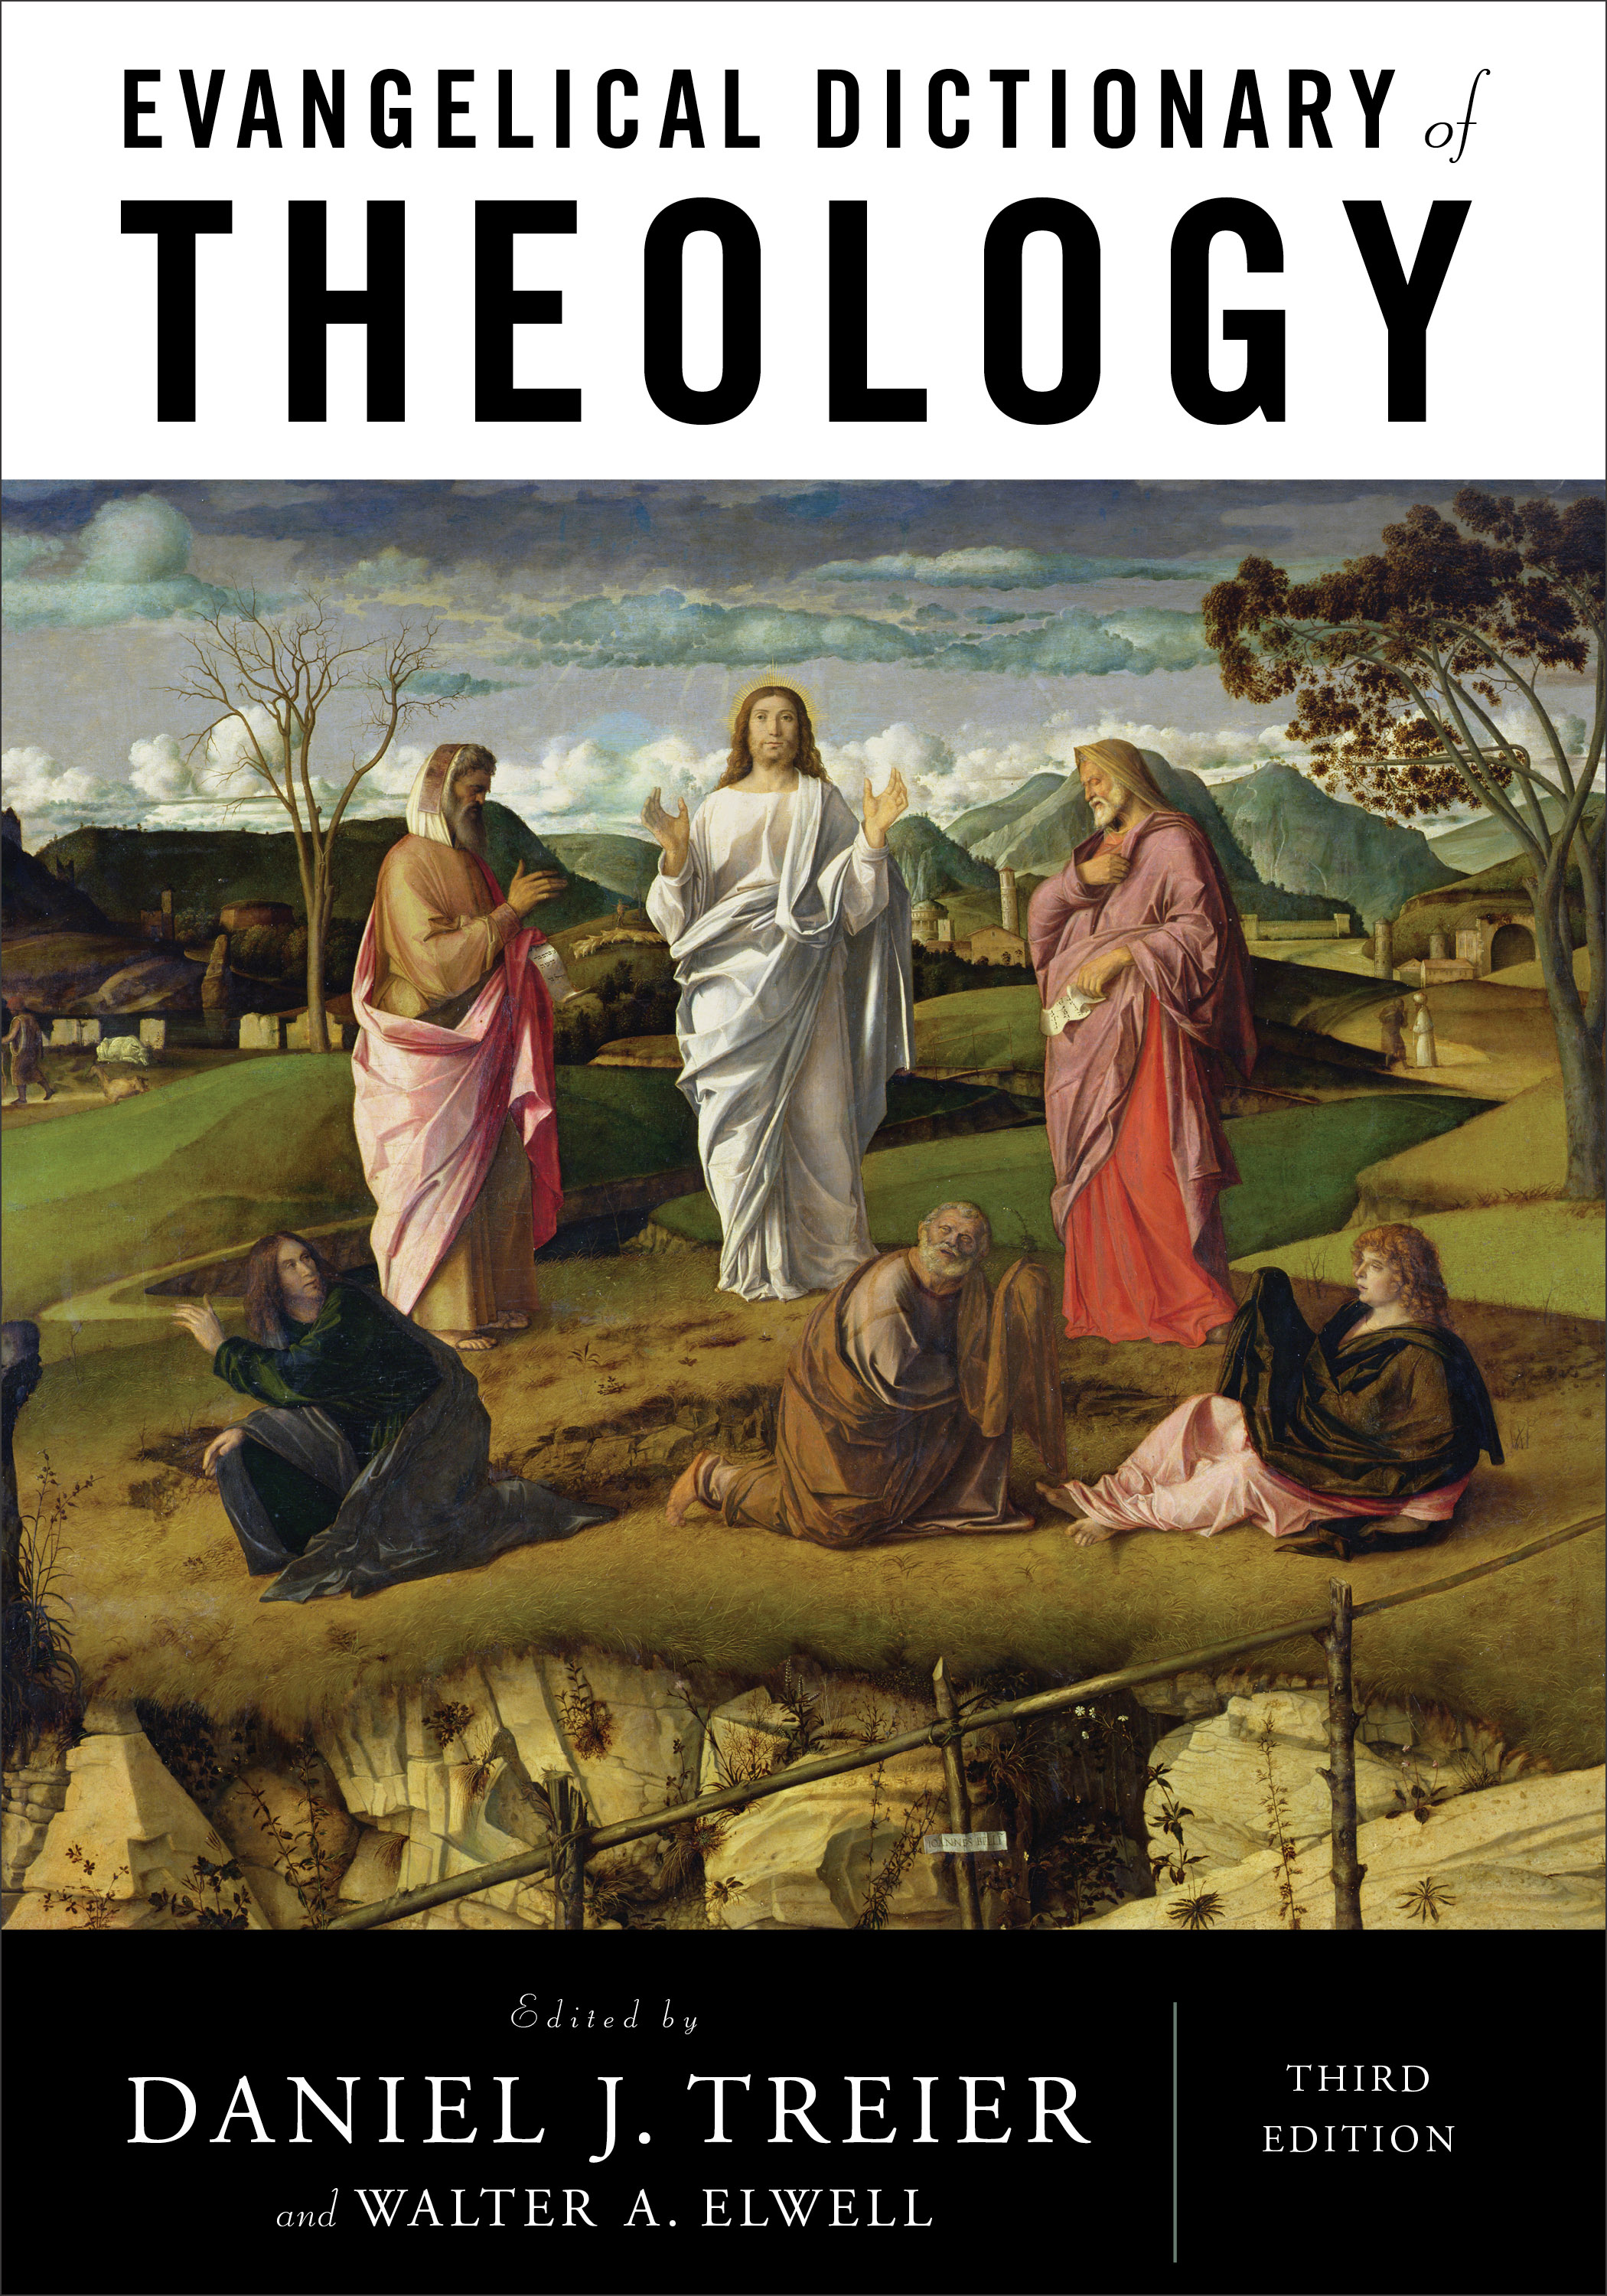 Evangelical Dictionary of Theology, 3rd Edition | Baker